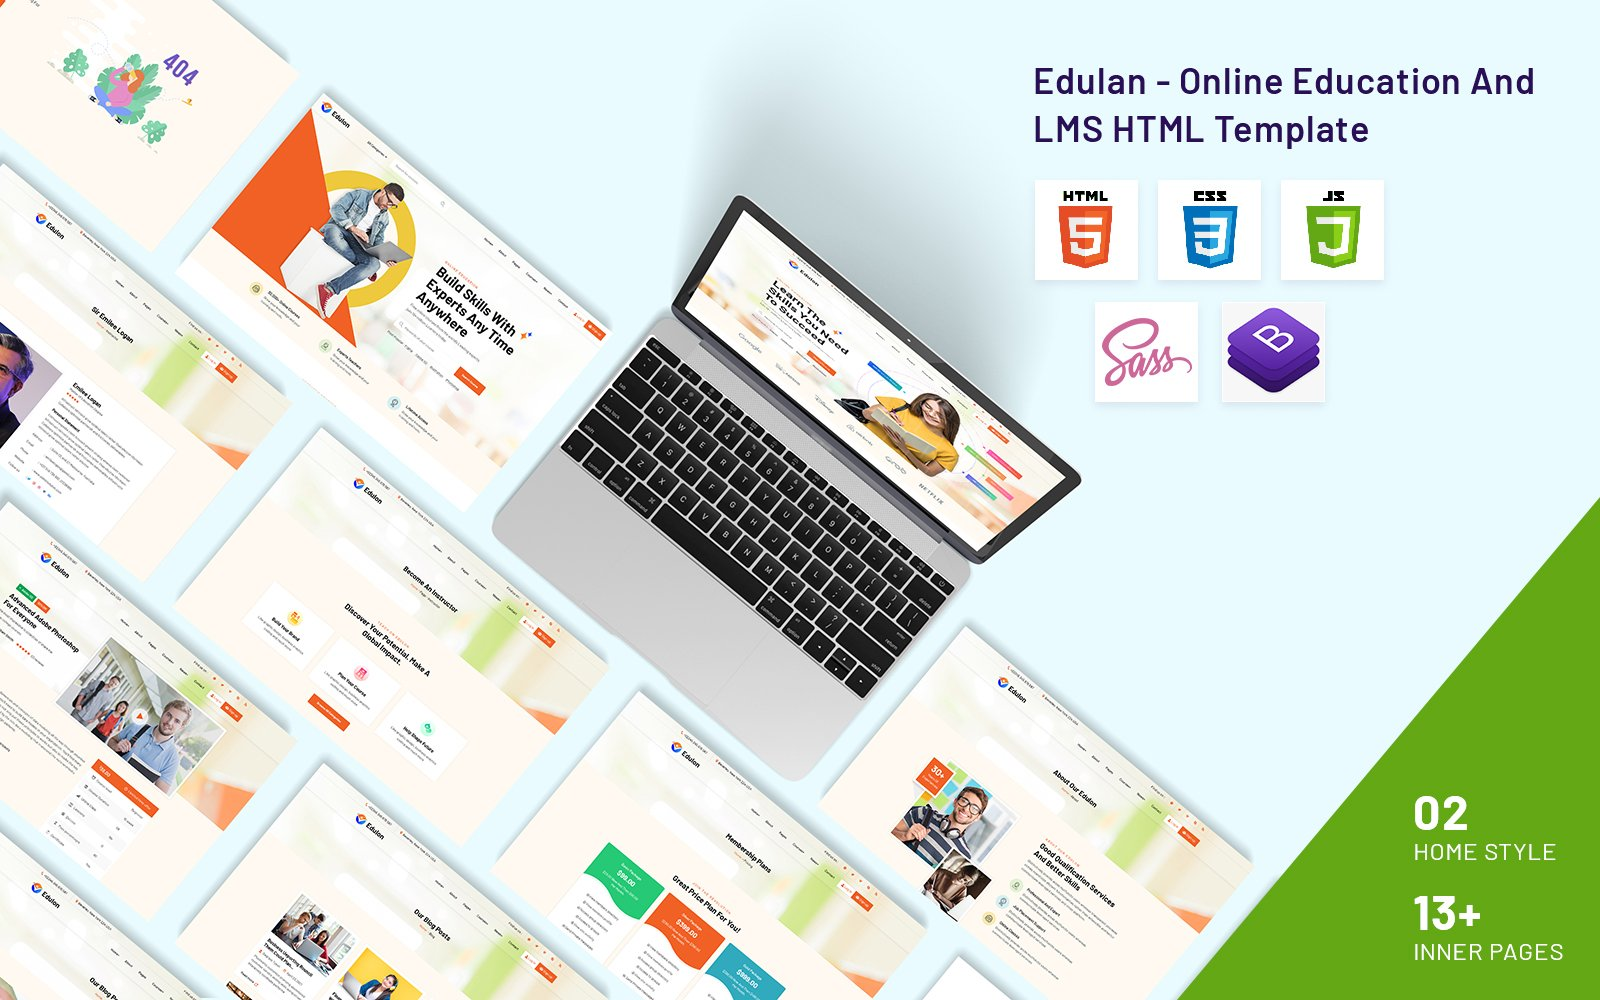 Edulan - Online Education And LMS HTML Template